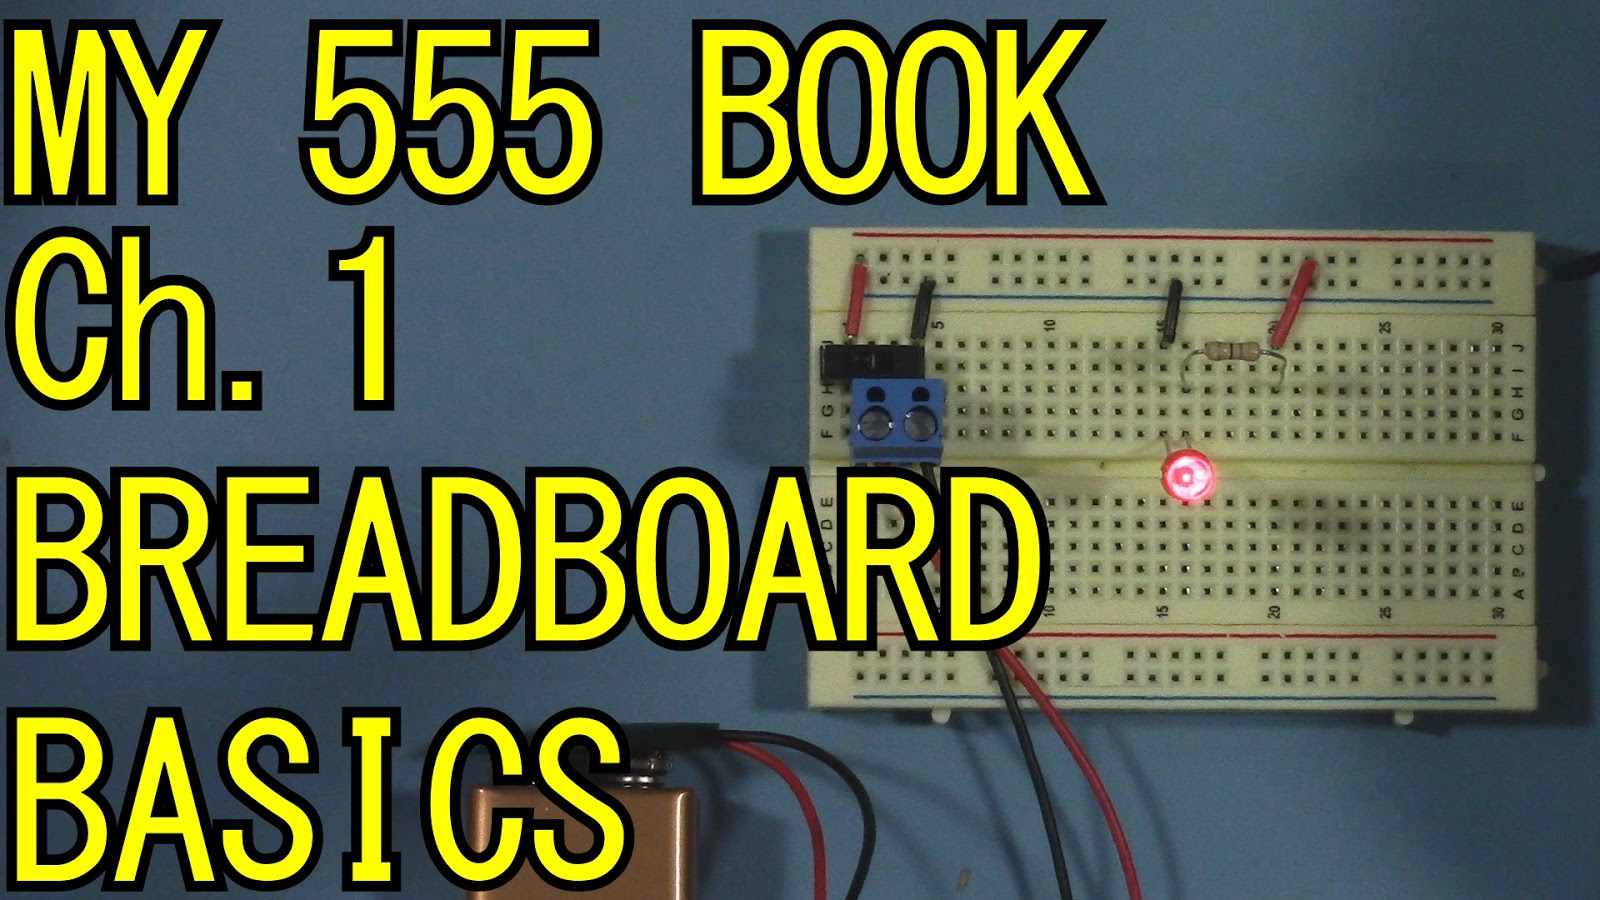 Bent-Tronics: My 555 Book, Chpt. 1: How to use a breadboard ...